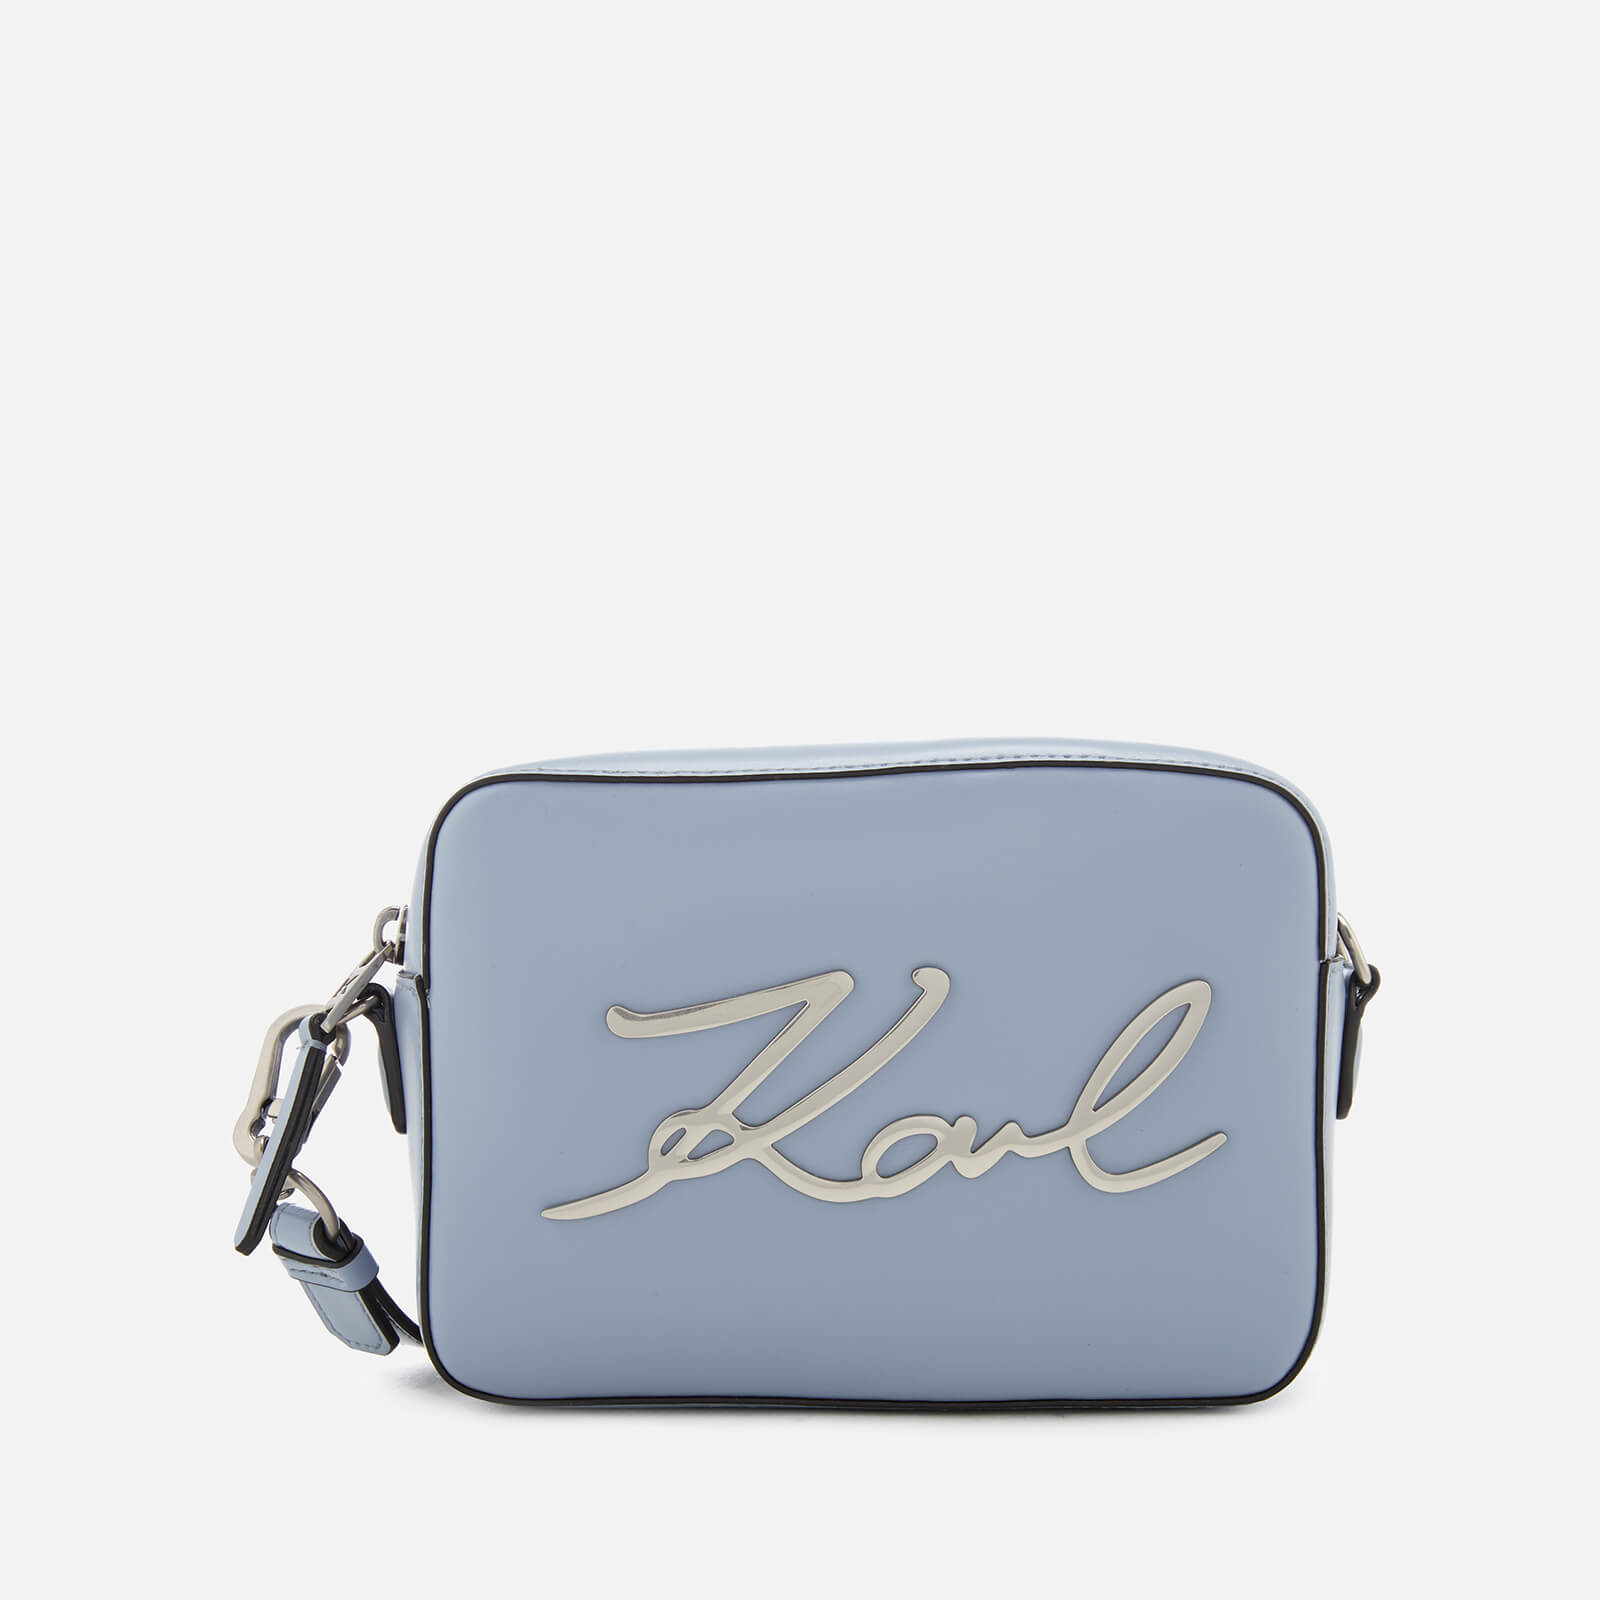 2562d22a686a Karl Lagerfeld Women s K Signature Camera Bag - Mistic Blue - Free UK  Delivery over £50